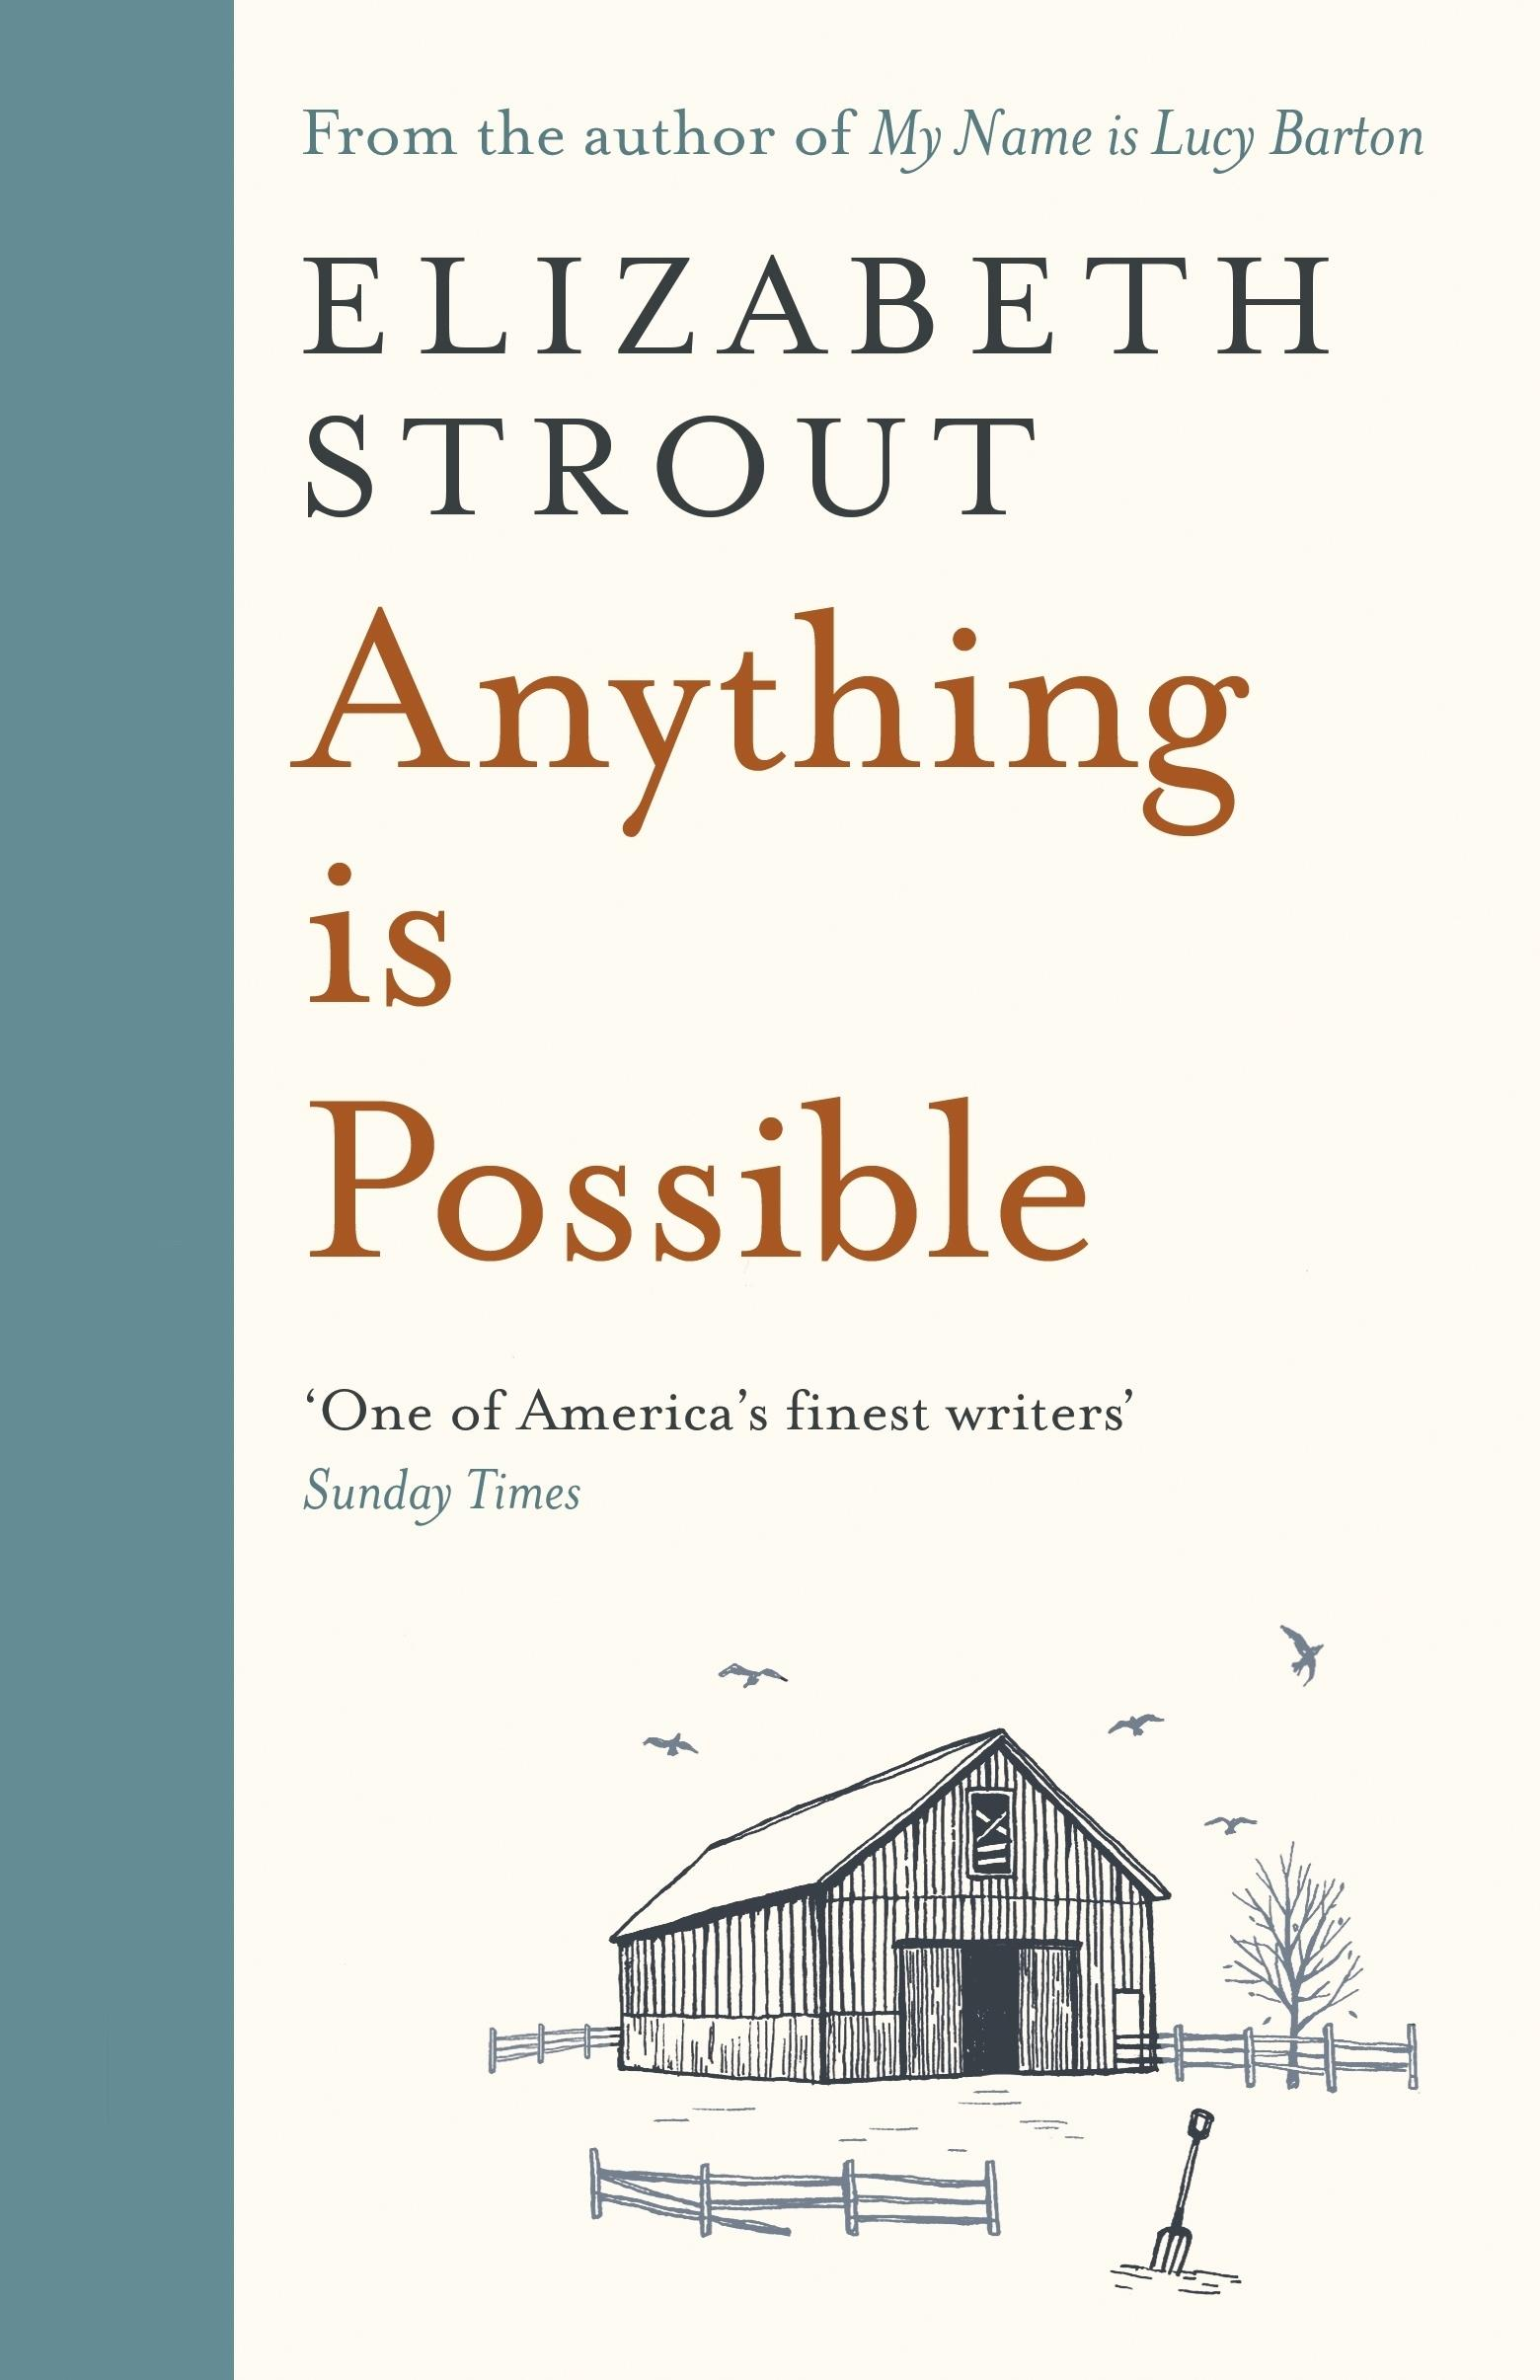 Image result for anything possible elizabeth strout